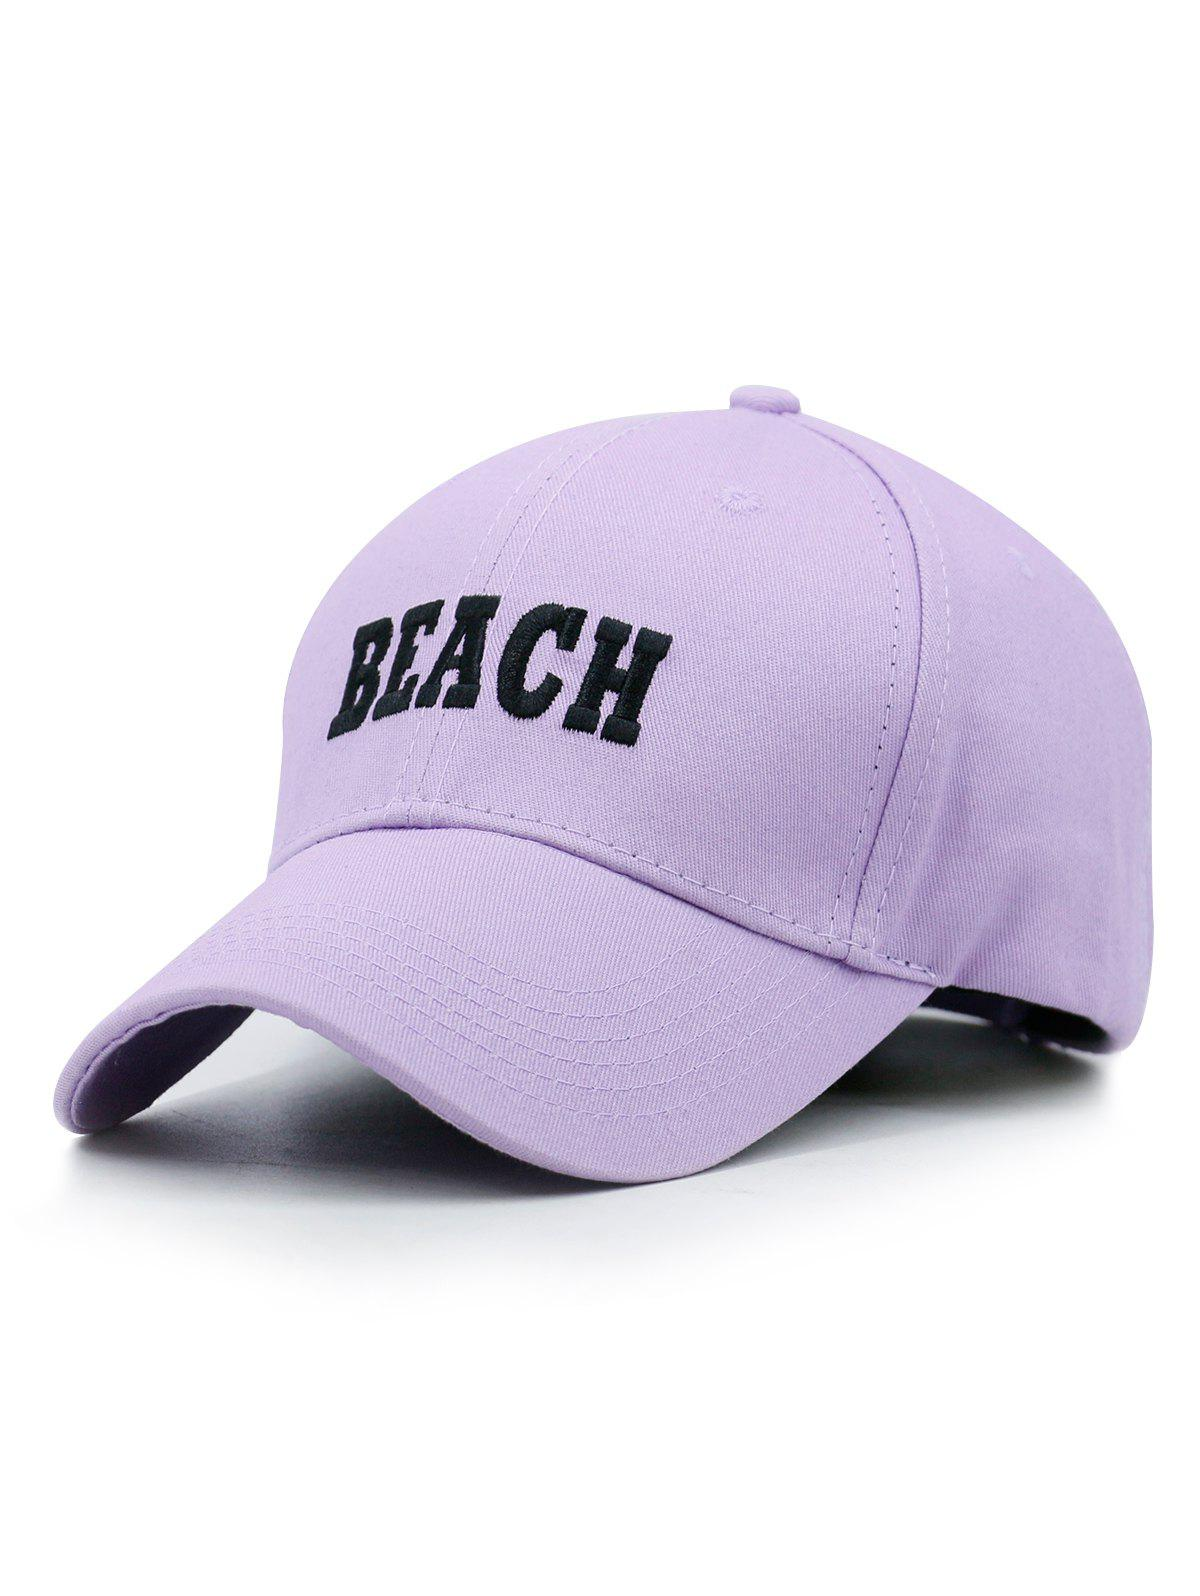 Discount Outdoor BEACH Embroidery Baseball Cap